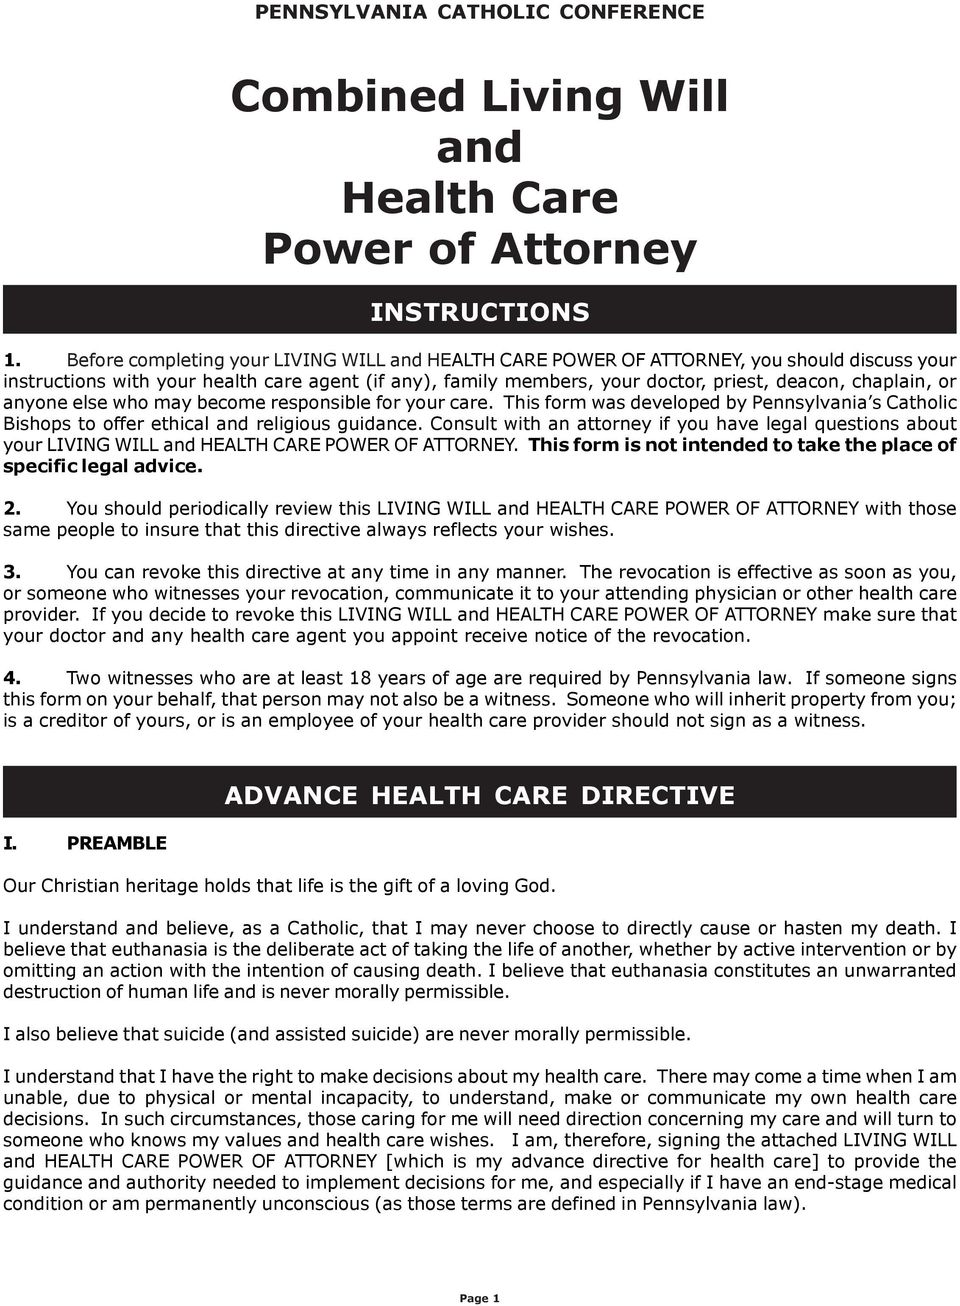 power of attorney form living will  Combined Living Will and Health Care Power of Attorney - PDF ...